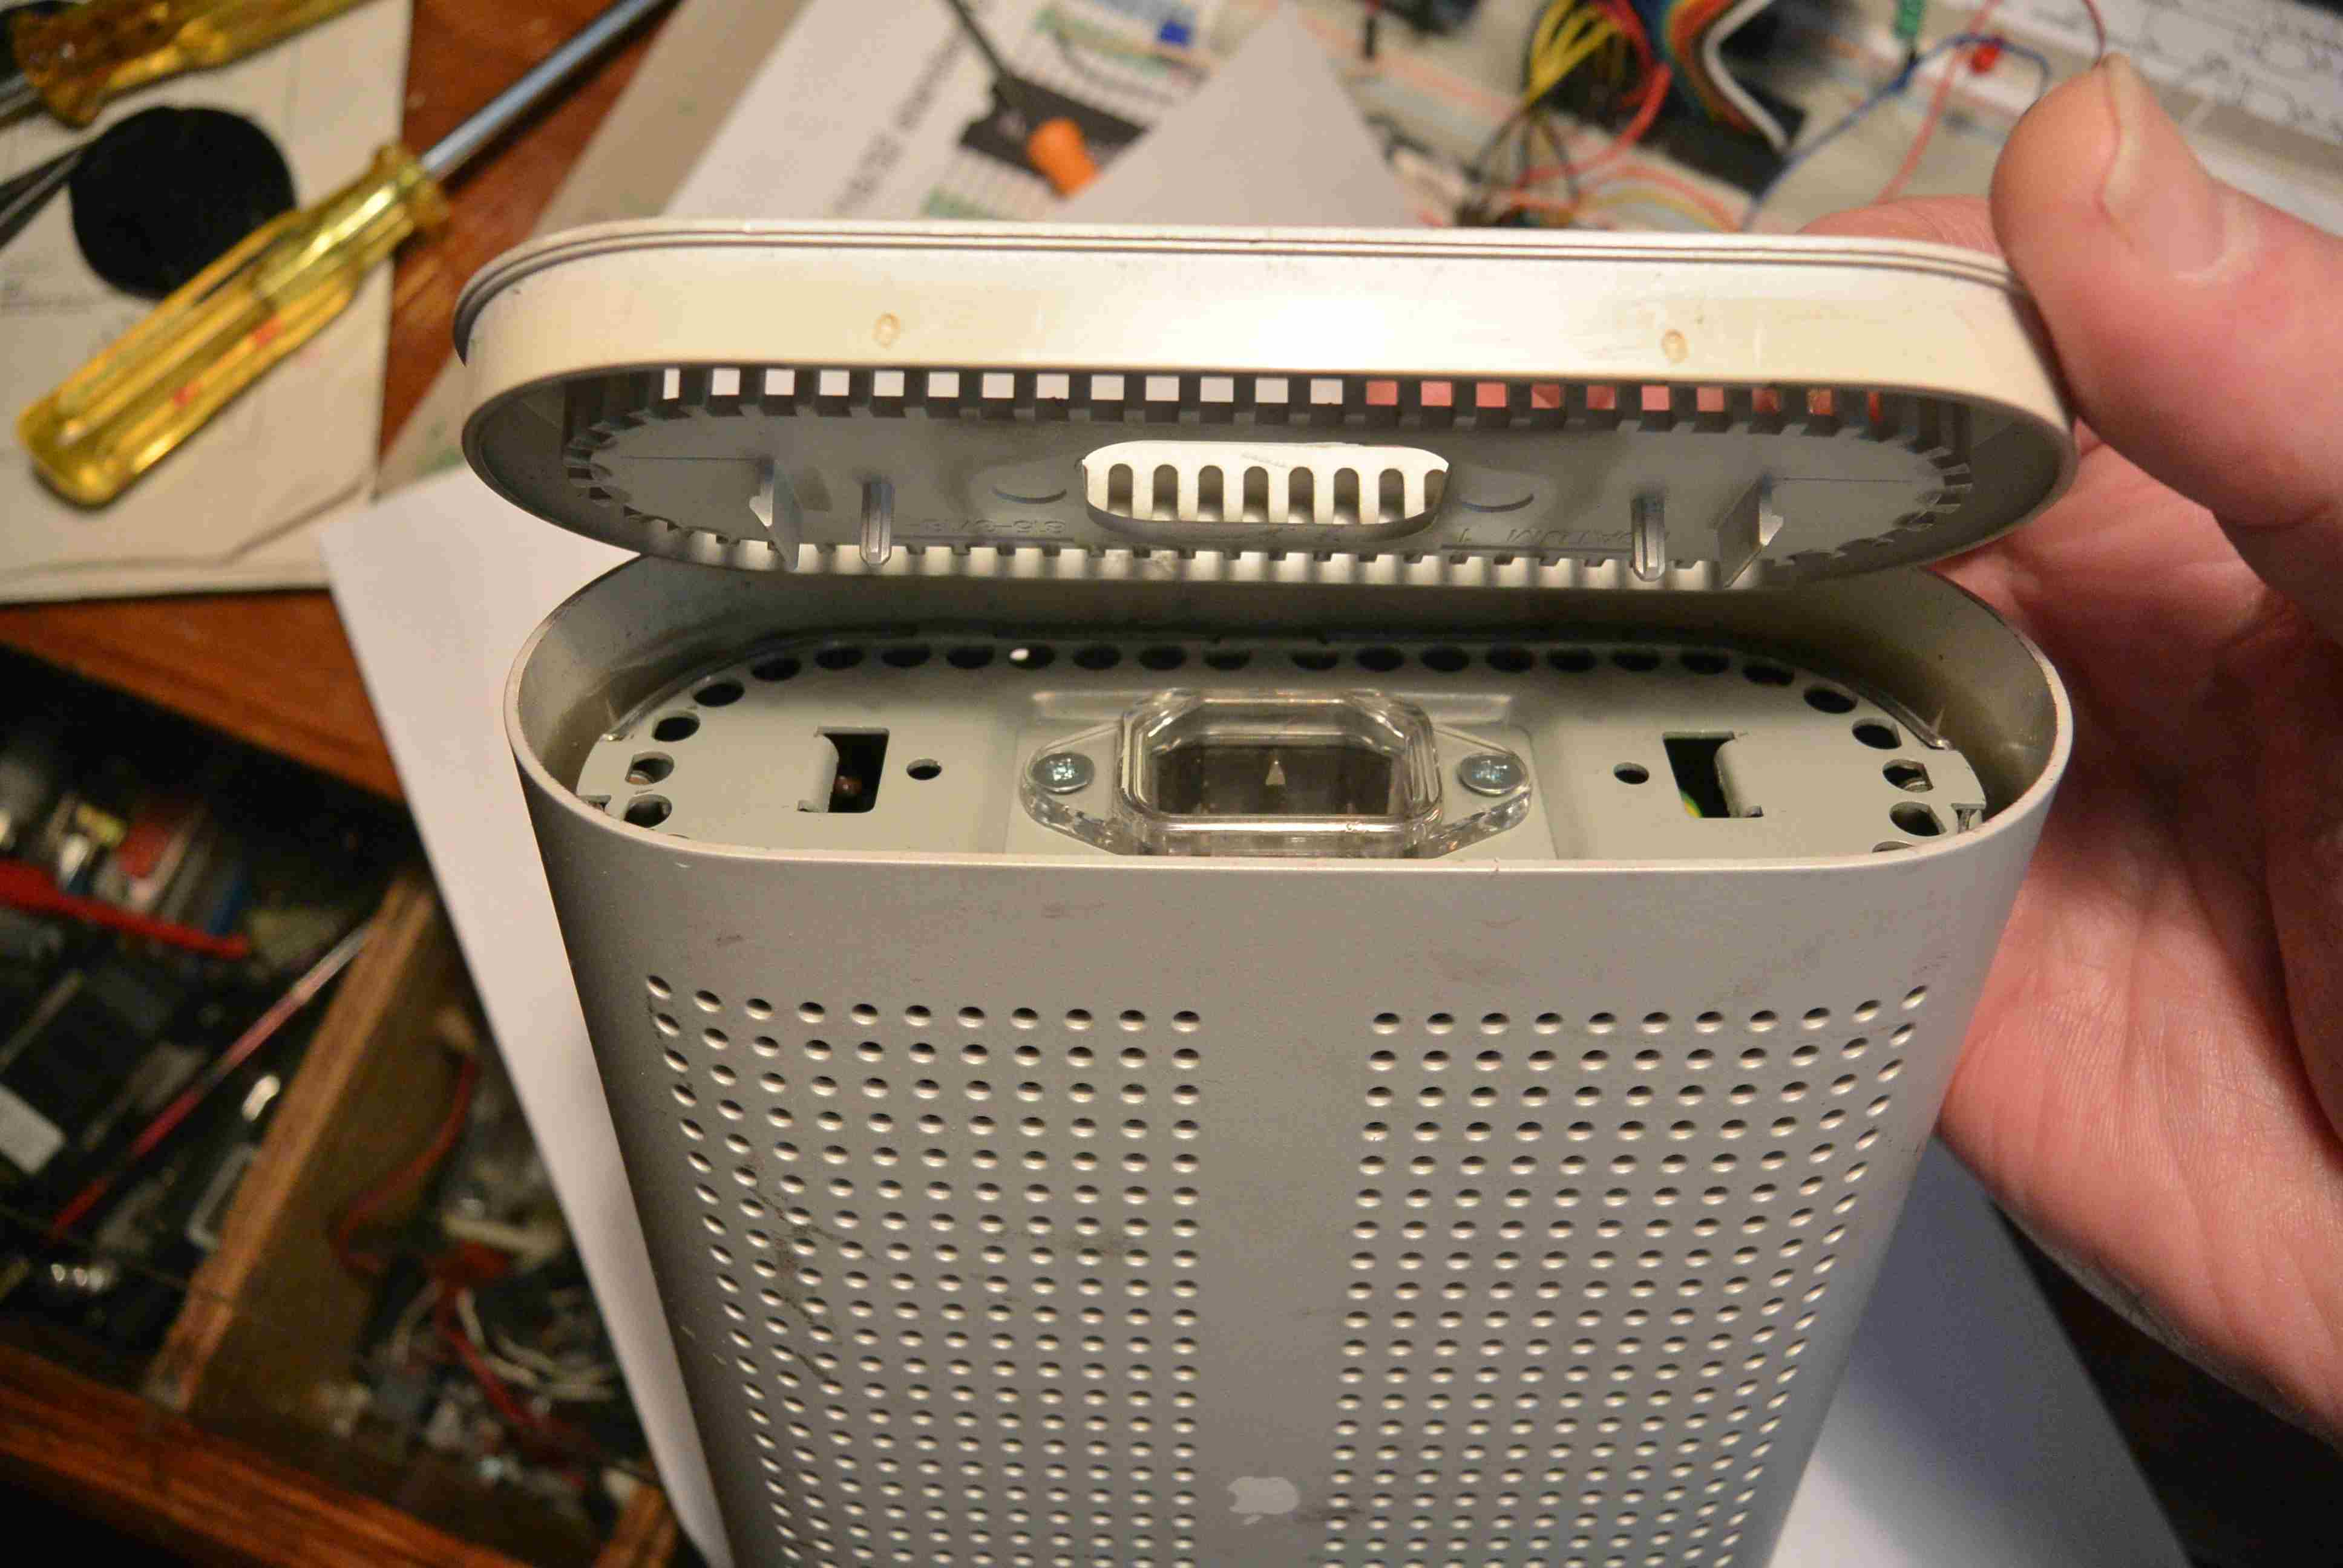 Apple M5849 - AC.JPG